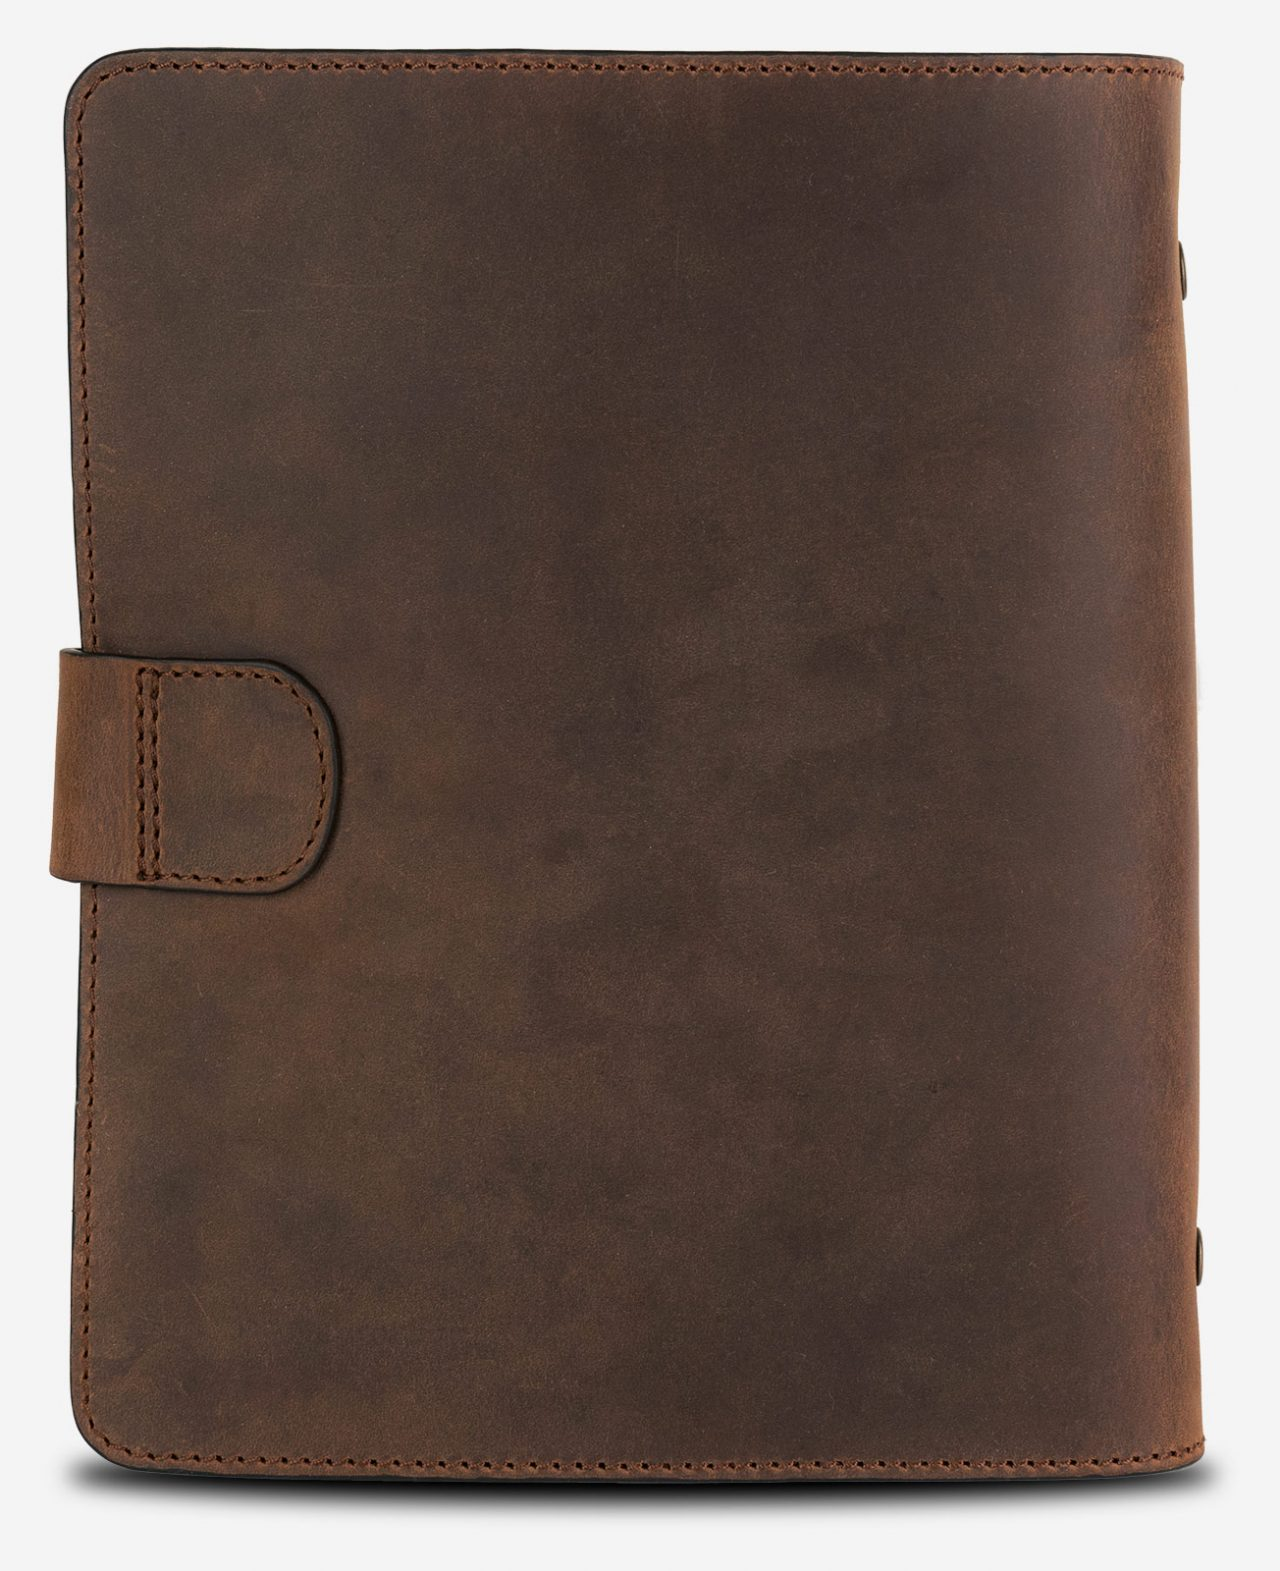 Beautiful vintage leather refillable notepad.